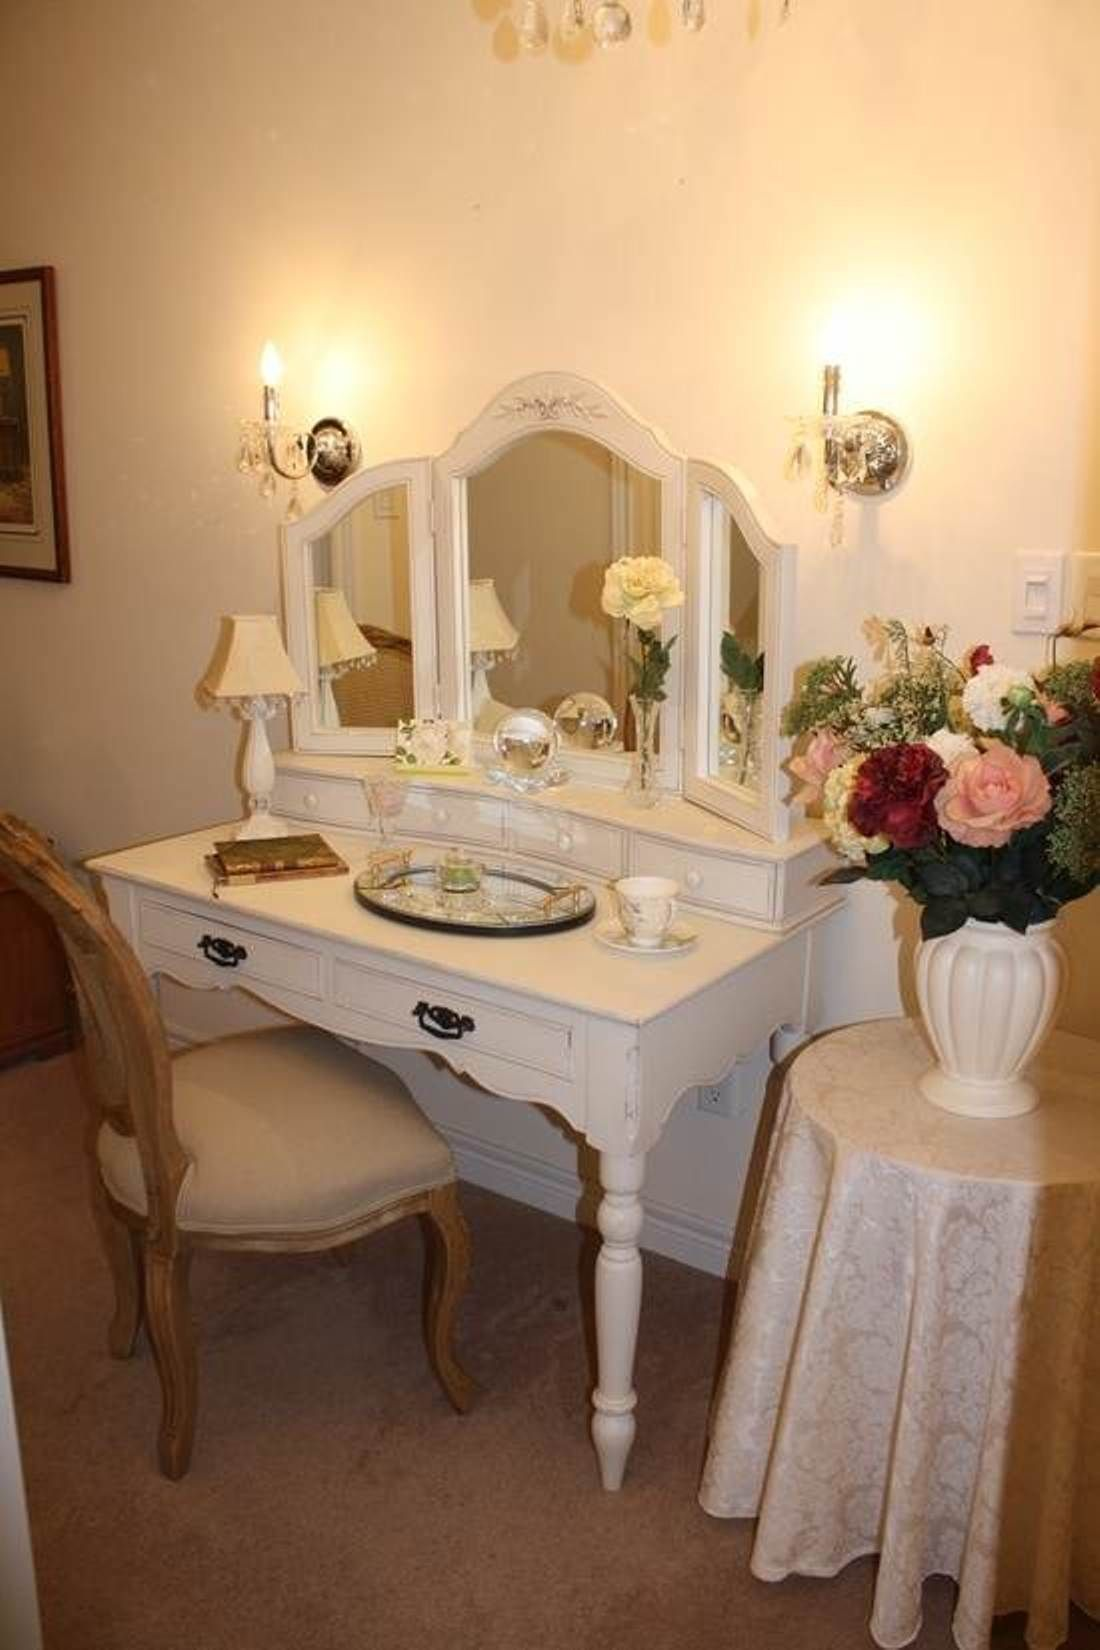 Simple White Small Wooden Antique Vanity Table Design With Elegant Chair On Brown Floor As Well ...